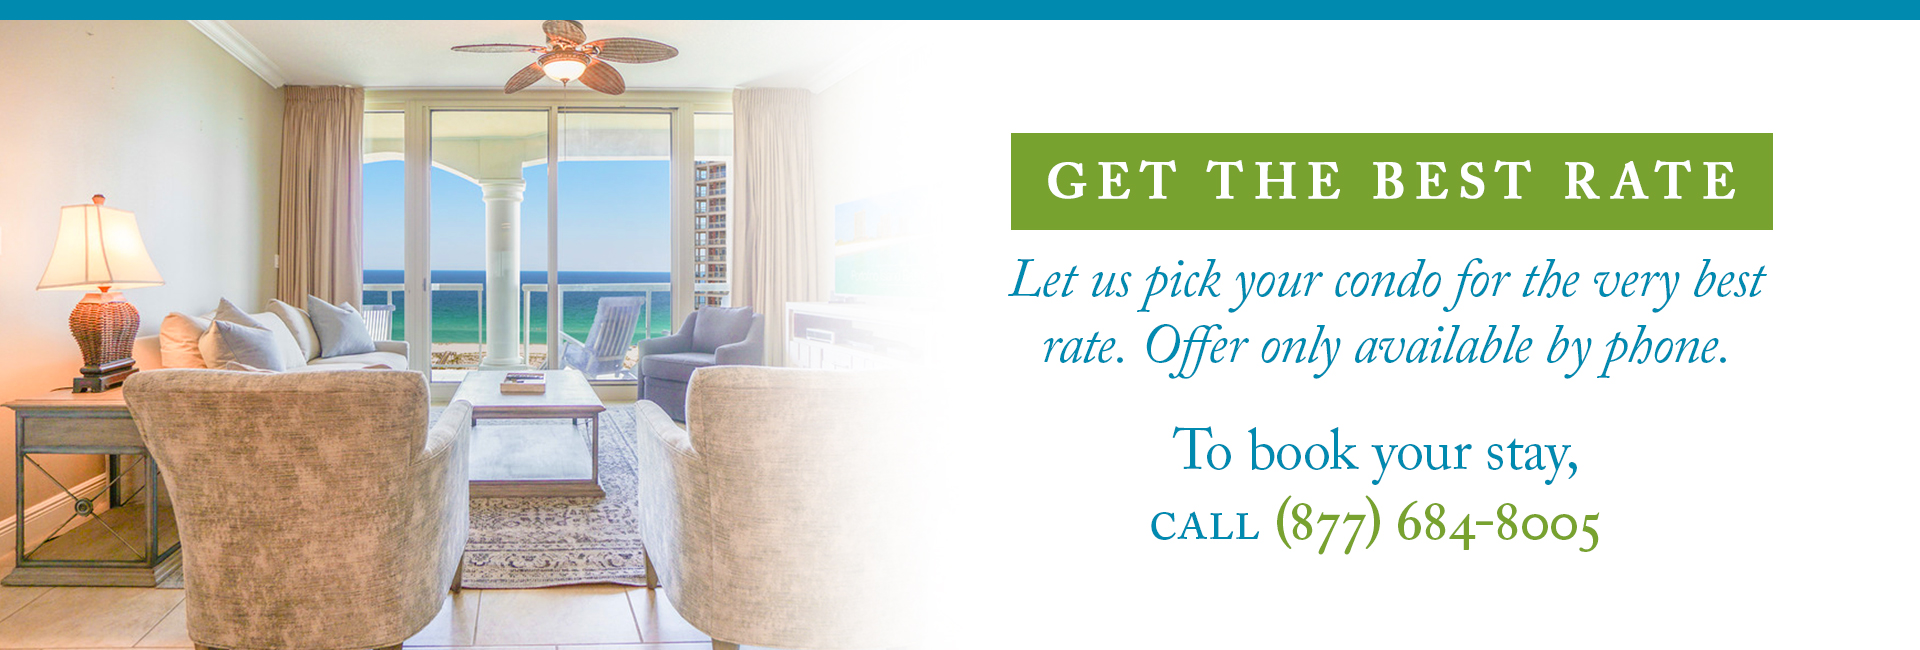 Condo living room with beach view - best rate guarantee flyer call for best offer - (877) 684-8005